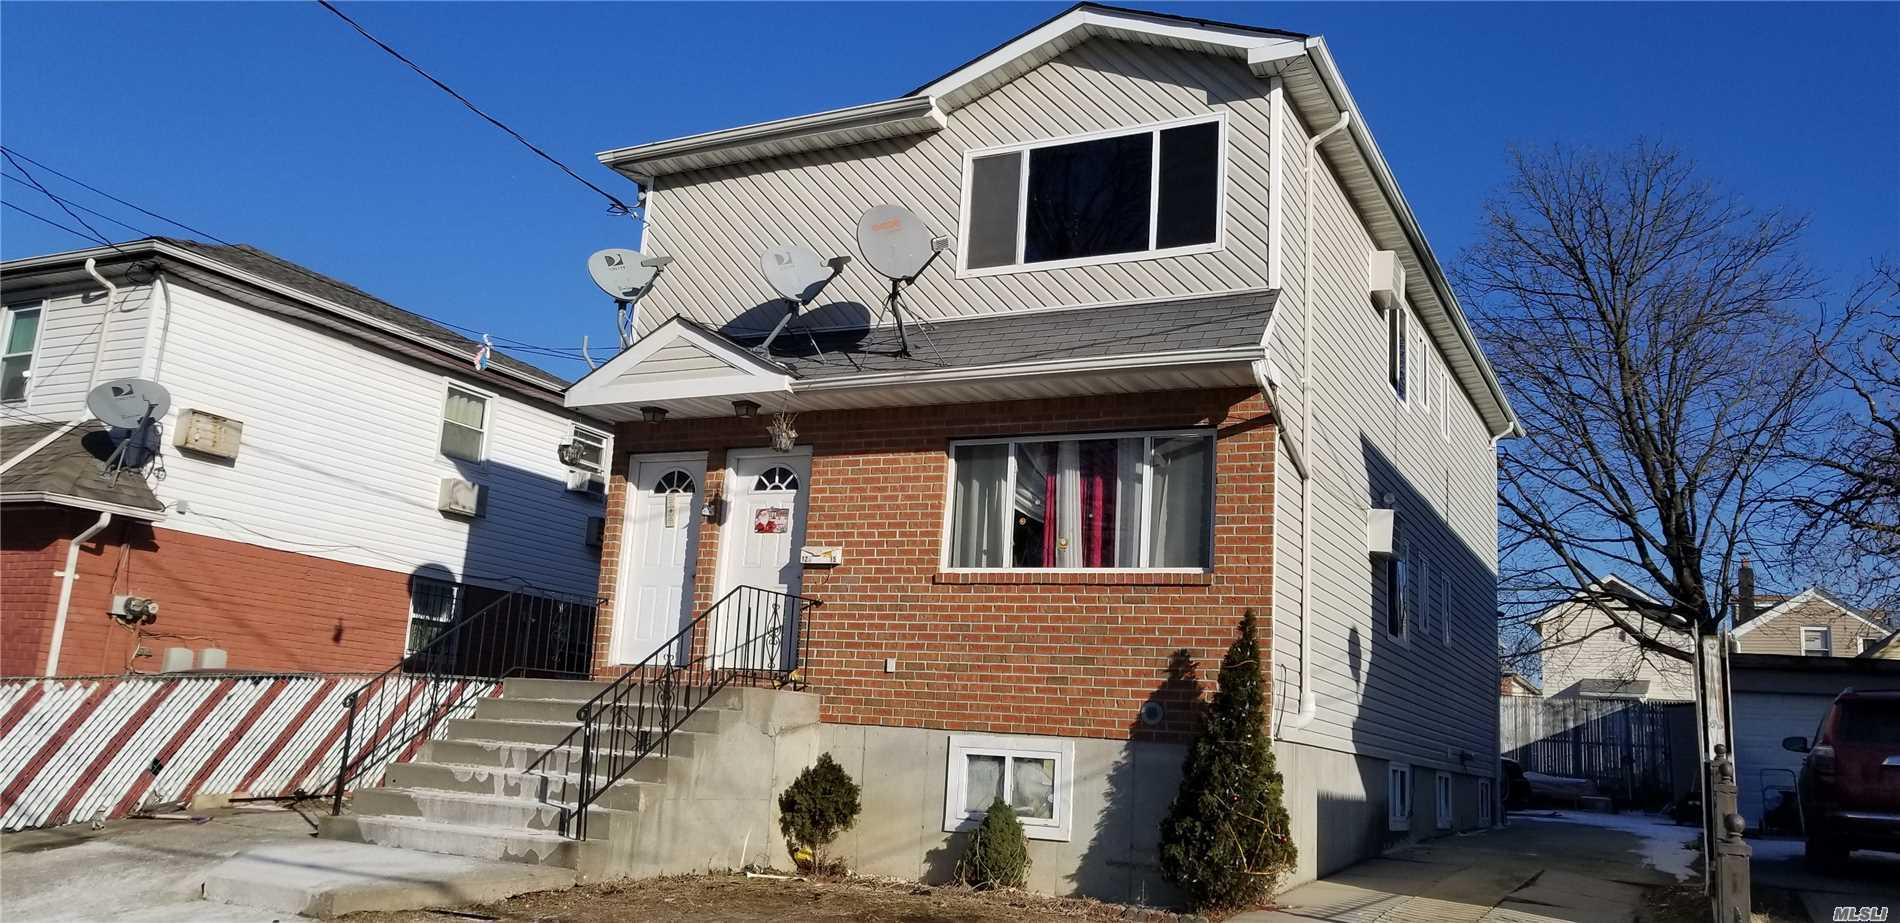 Property for sale at 128-15 146th Street, Jamaica NY 11436, Jamaica,  New York 11436